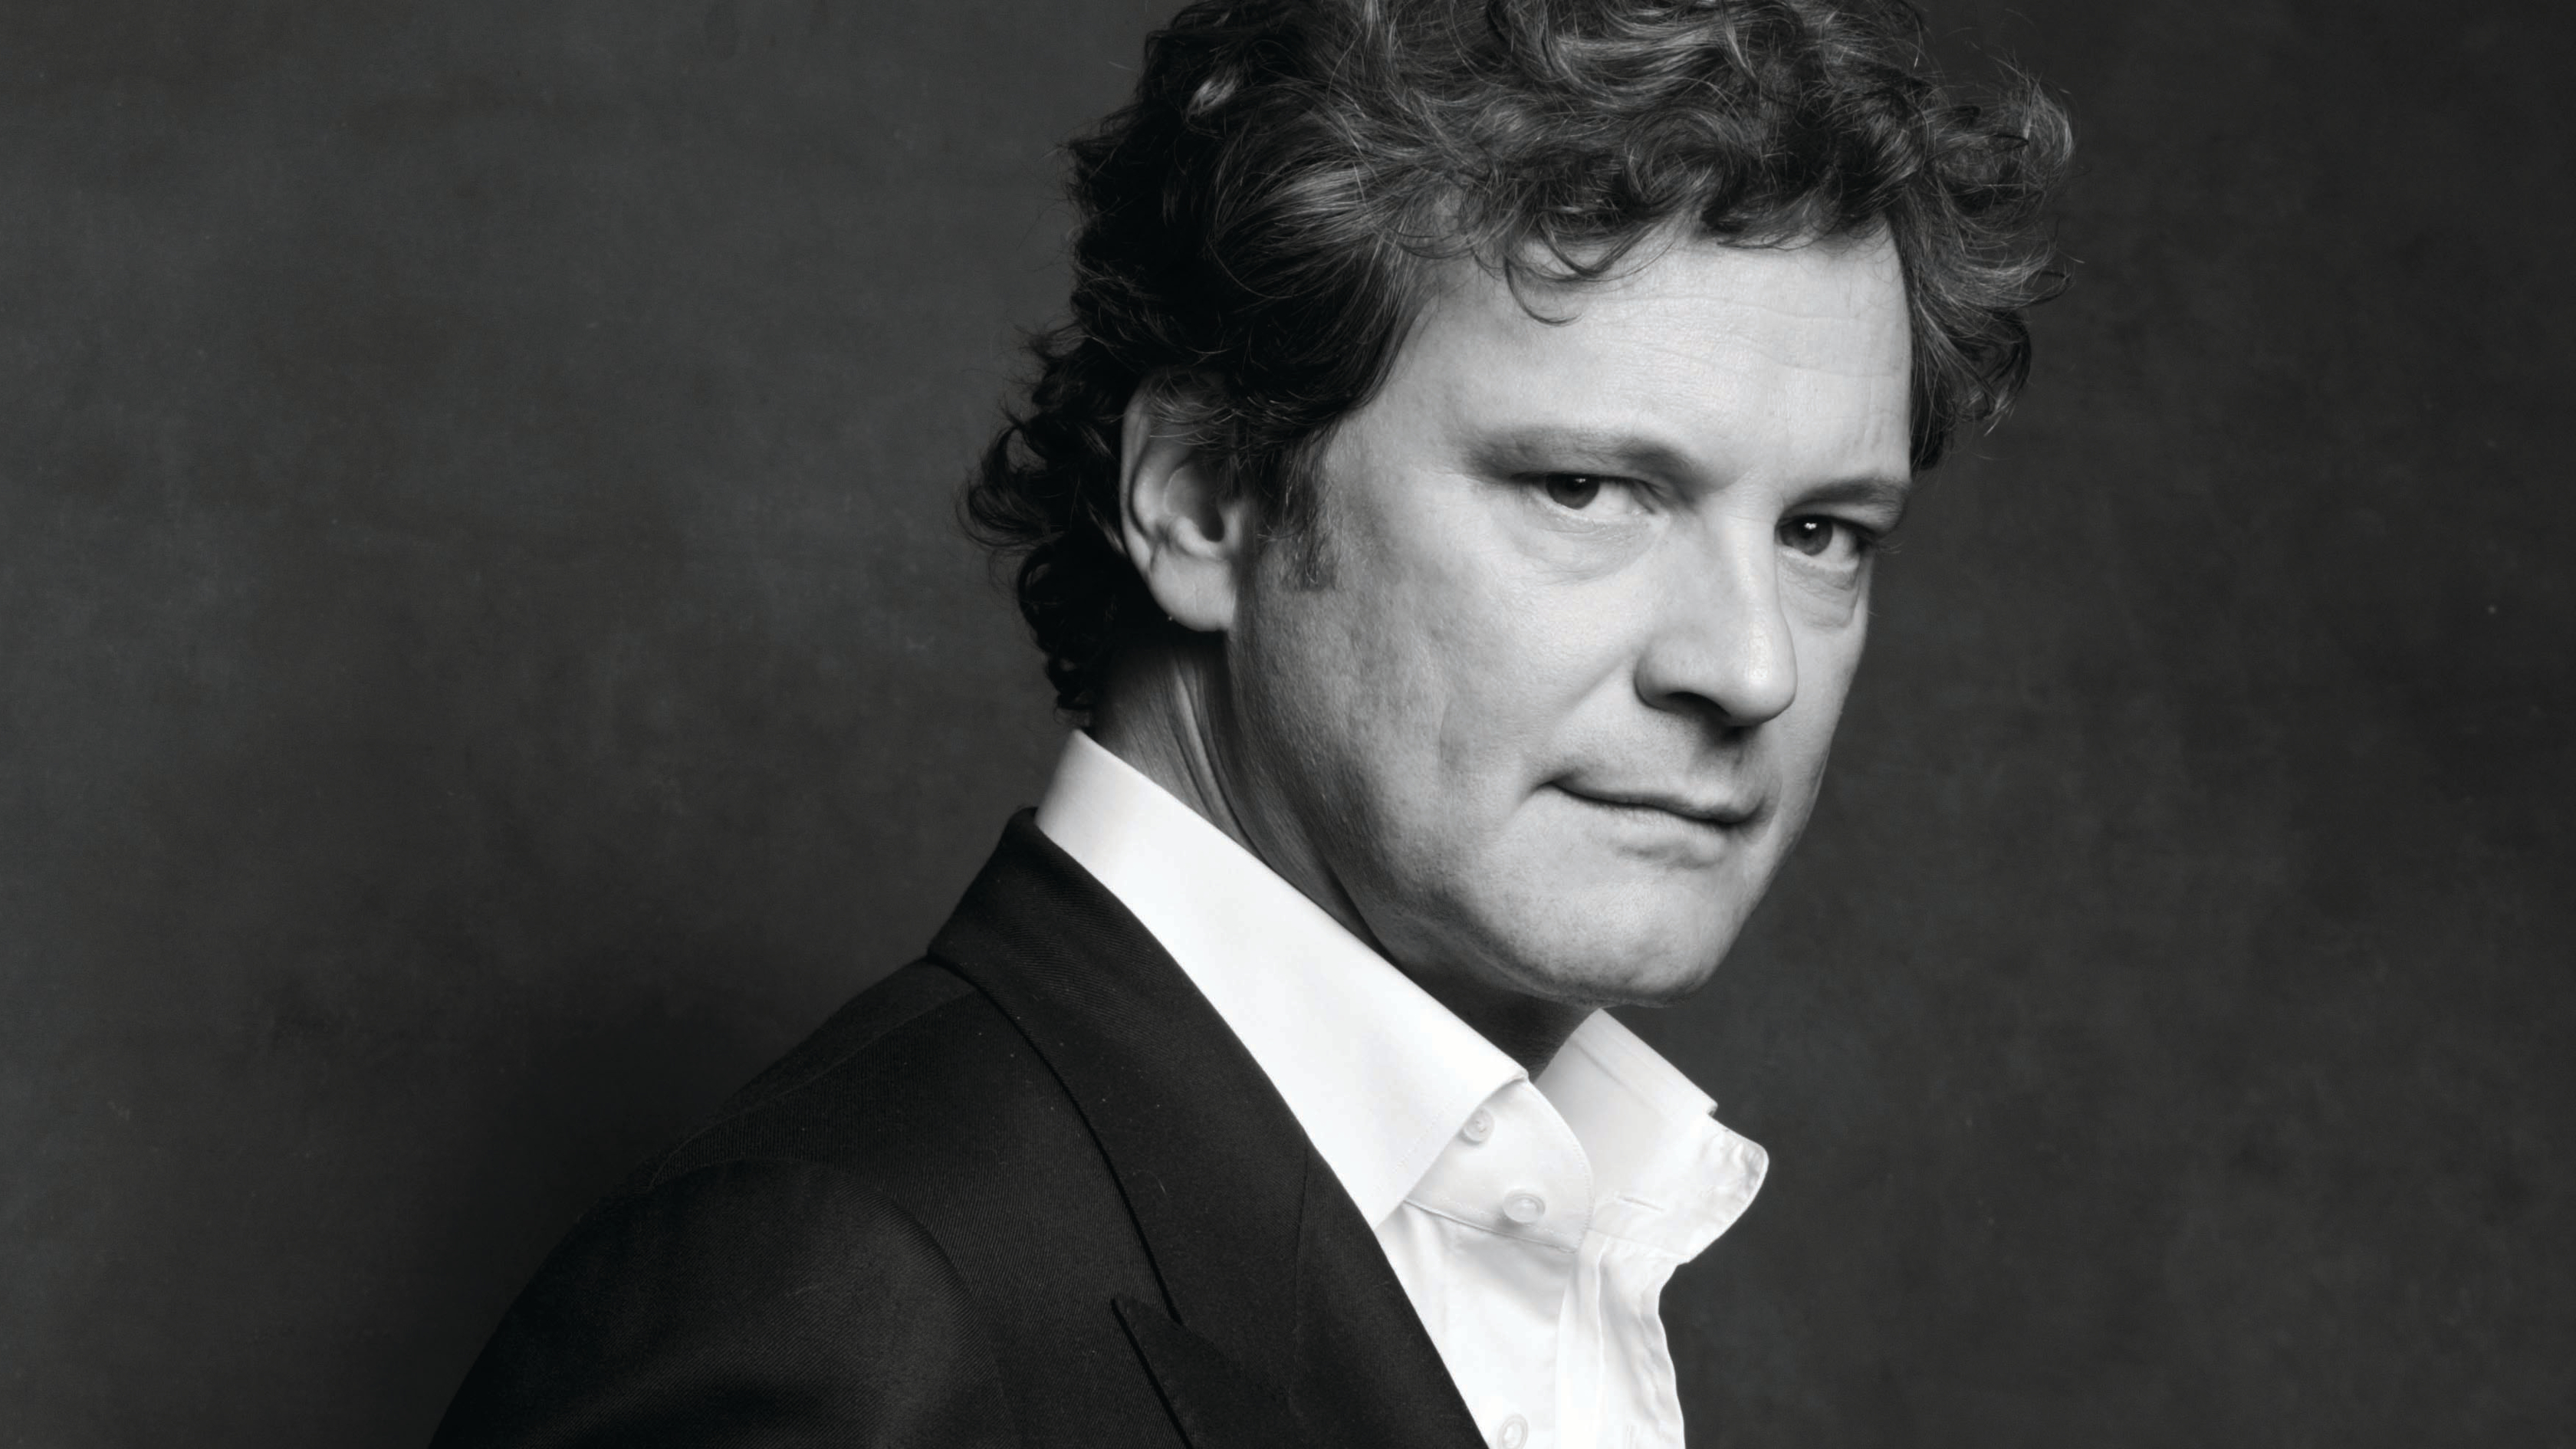 3360x1890 - Colin Firth Wallpapers 4